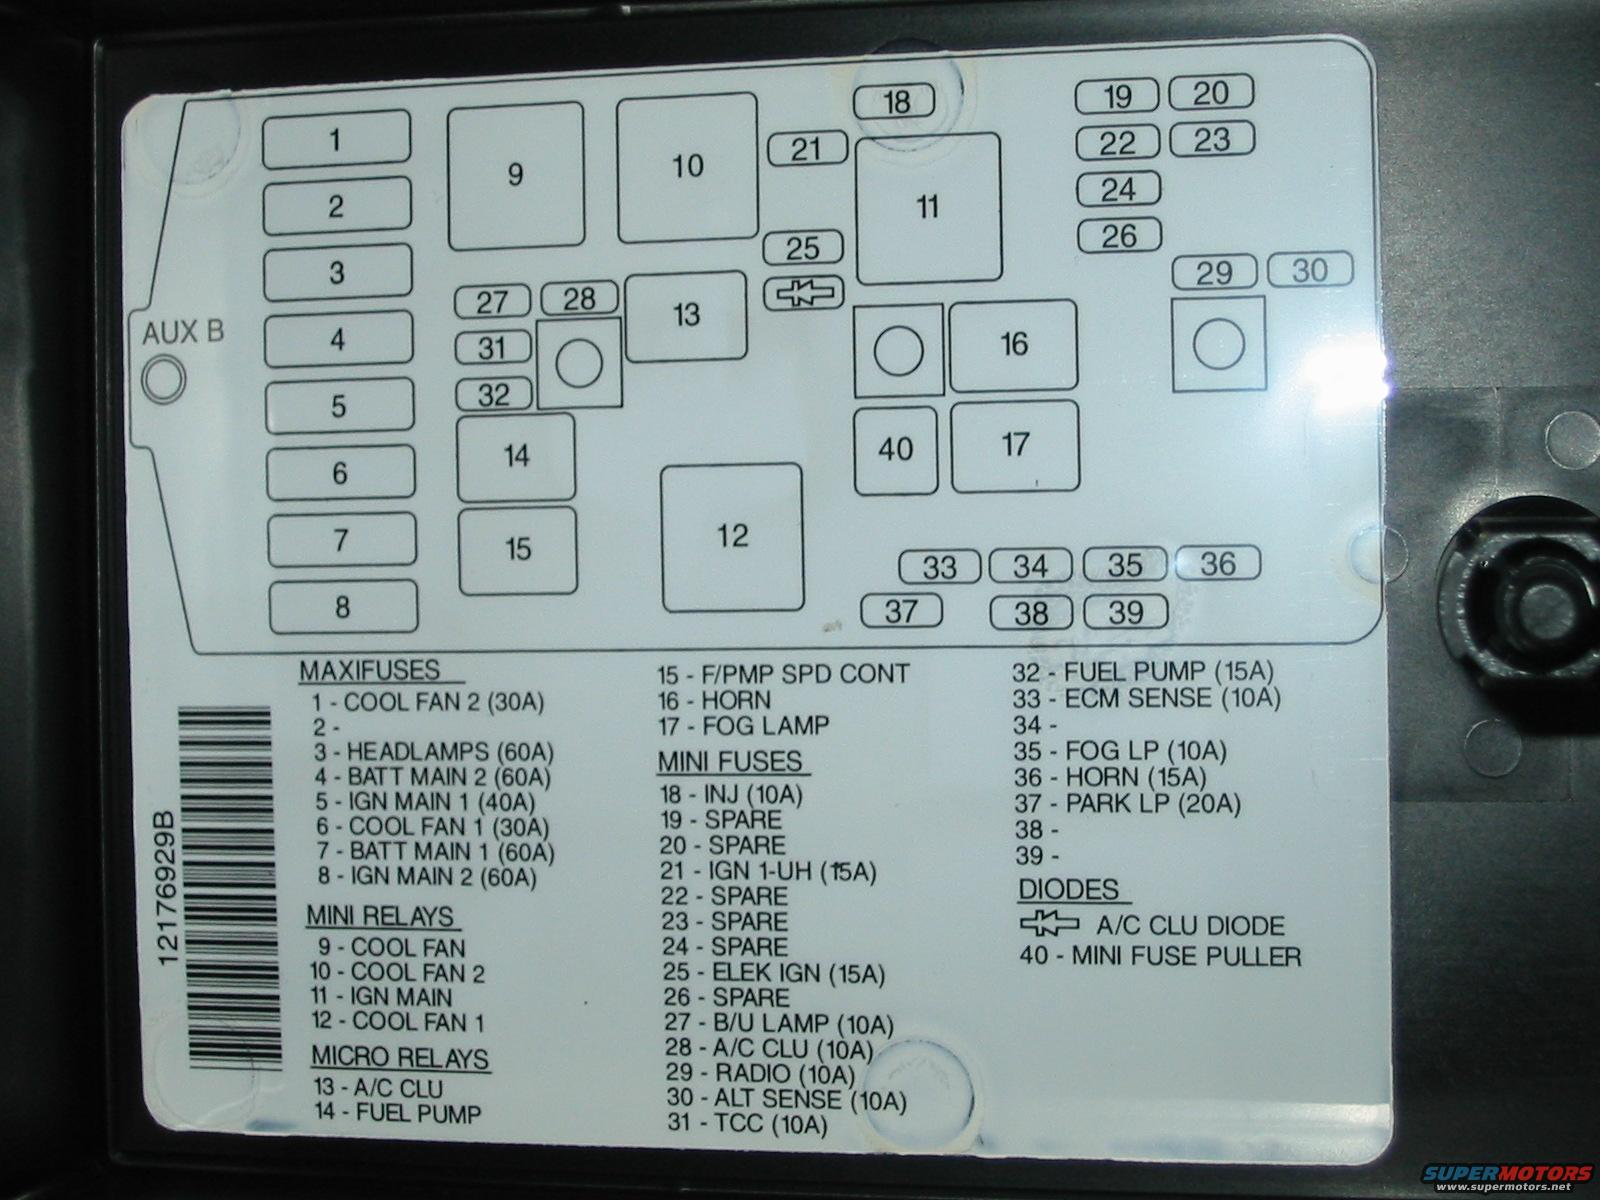 Wiring Diagram 1982 Honda Goldwing Wiring Diagram Freightliner Wiring